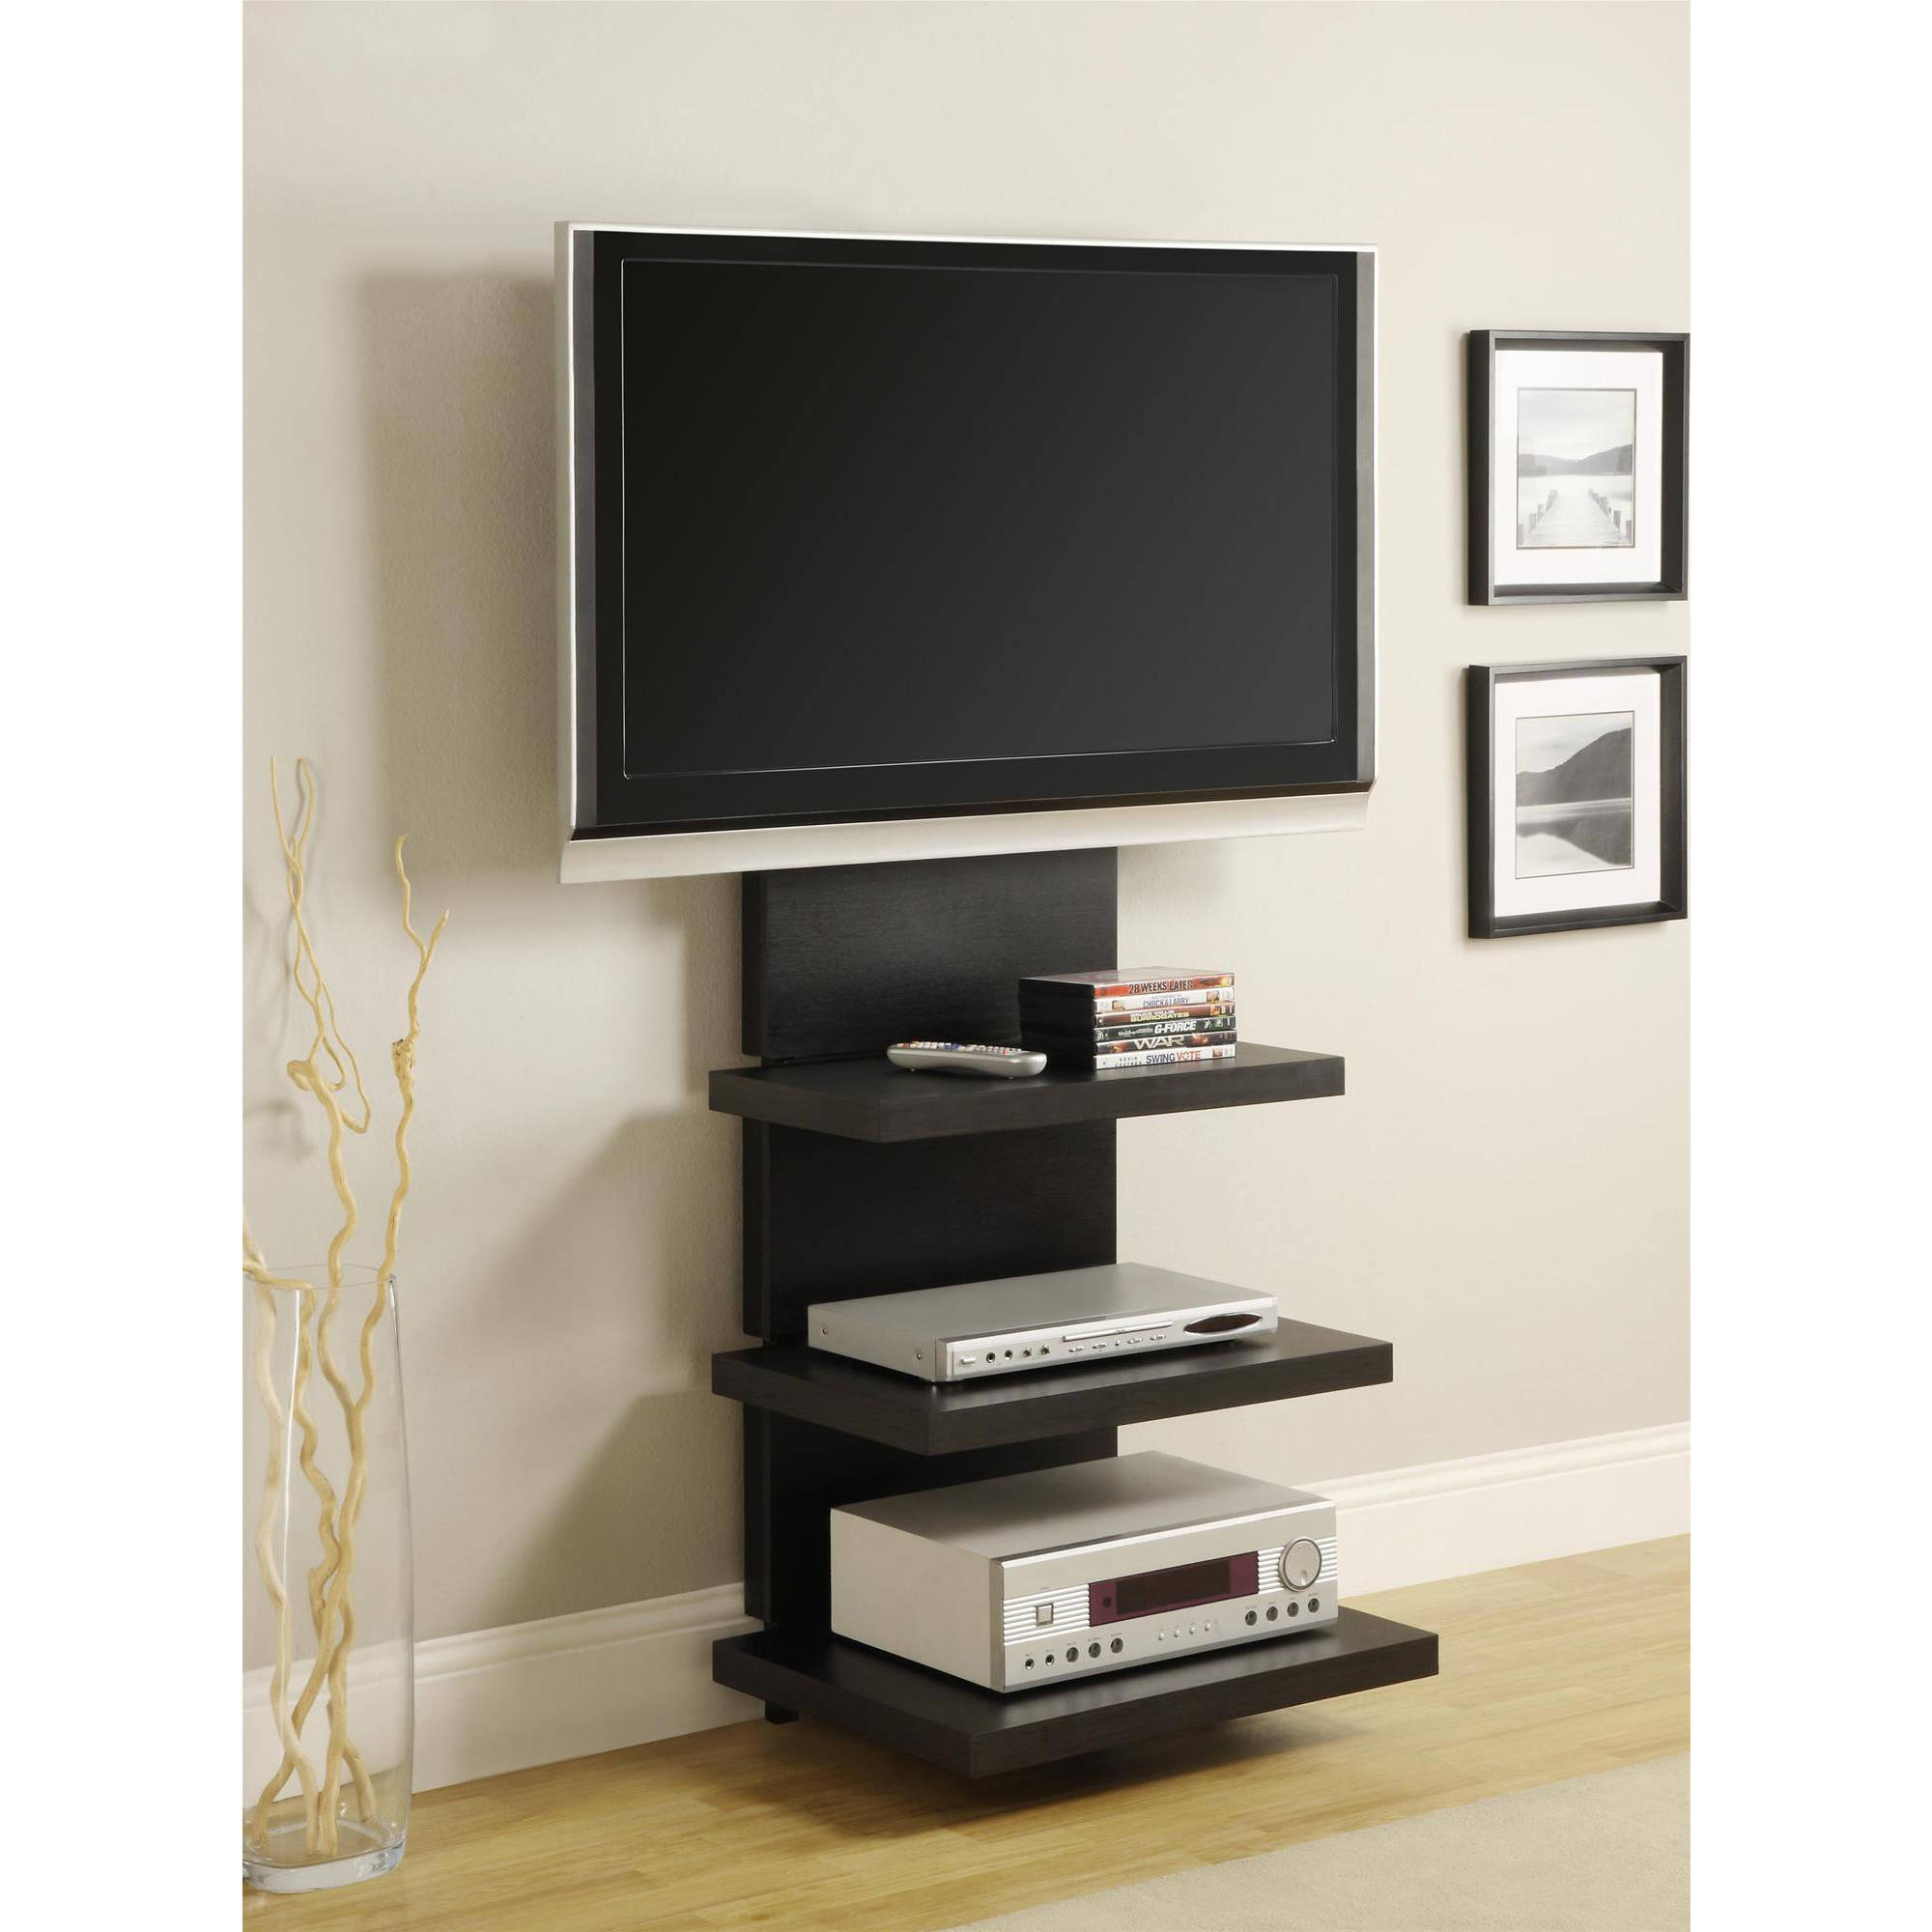 wall mount tv stand Altra Wall Mount TV Stand with 3 Shelves, for TVs up to 60